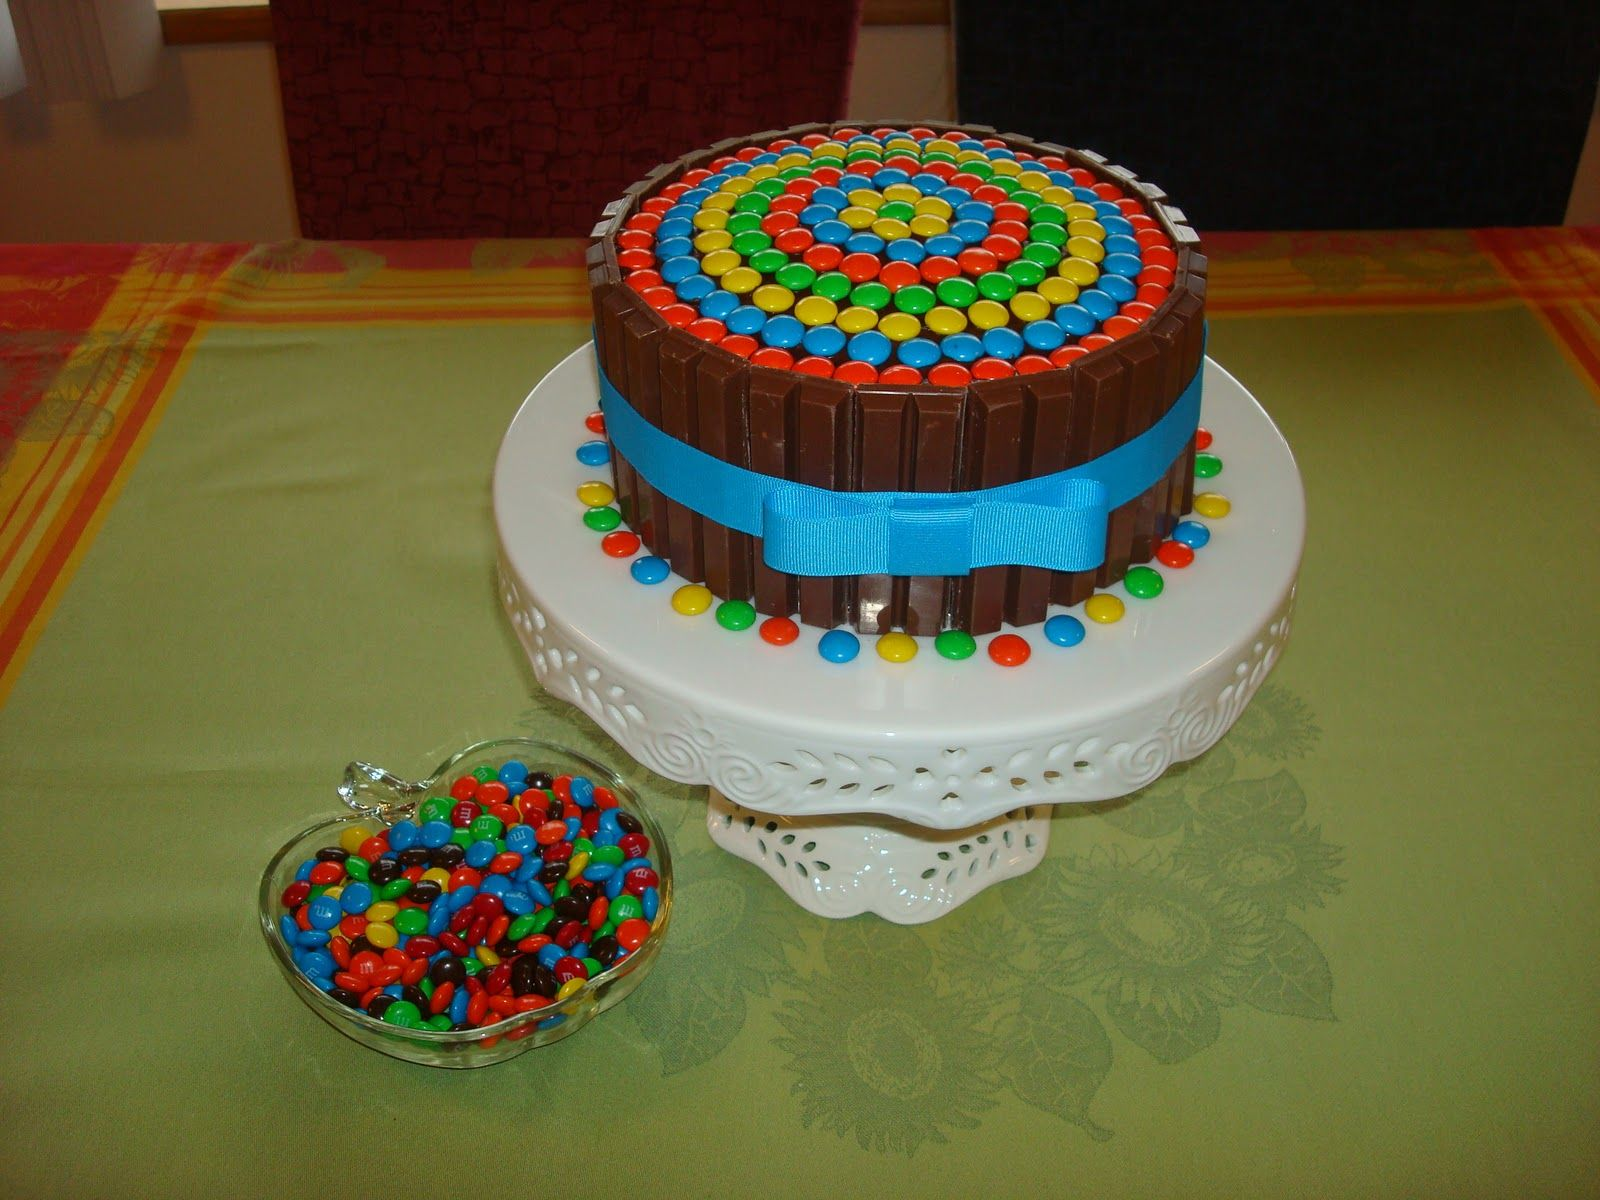 Pin By Lisa Cantwell On Cakes I Want To Make